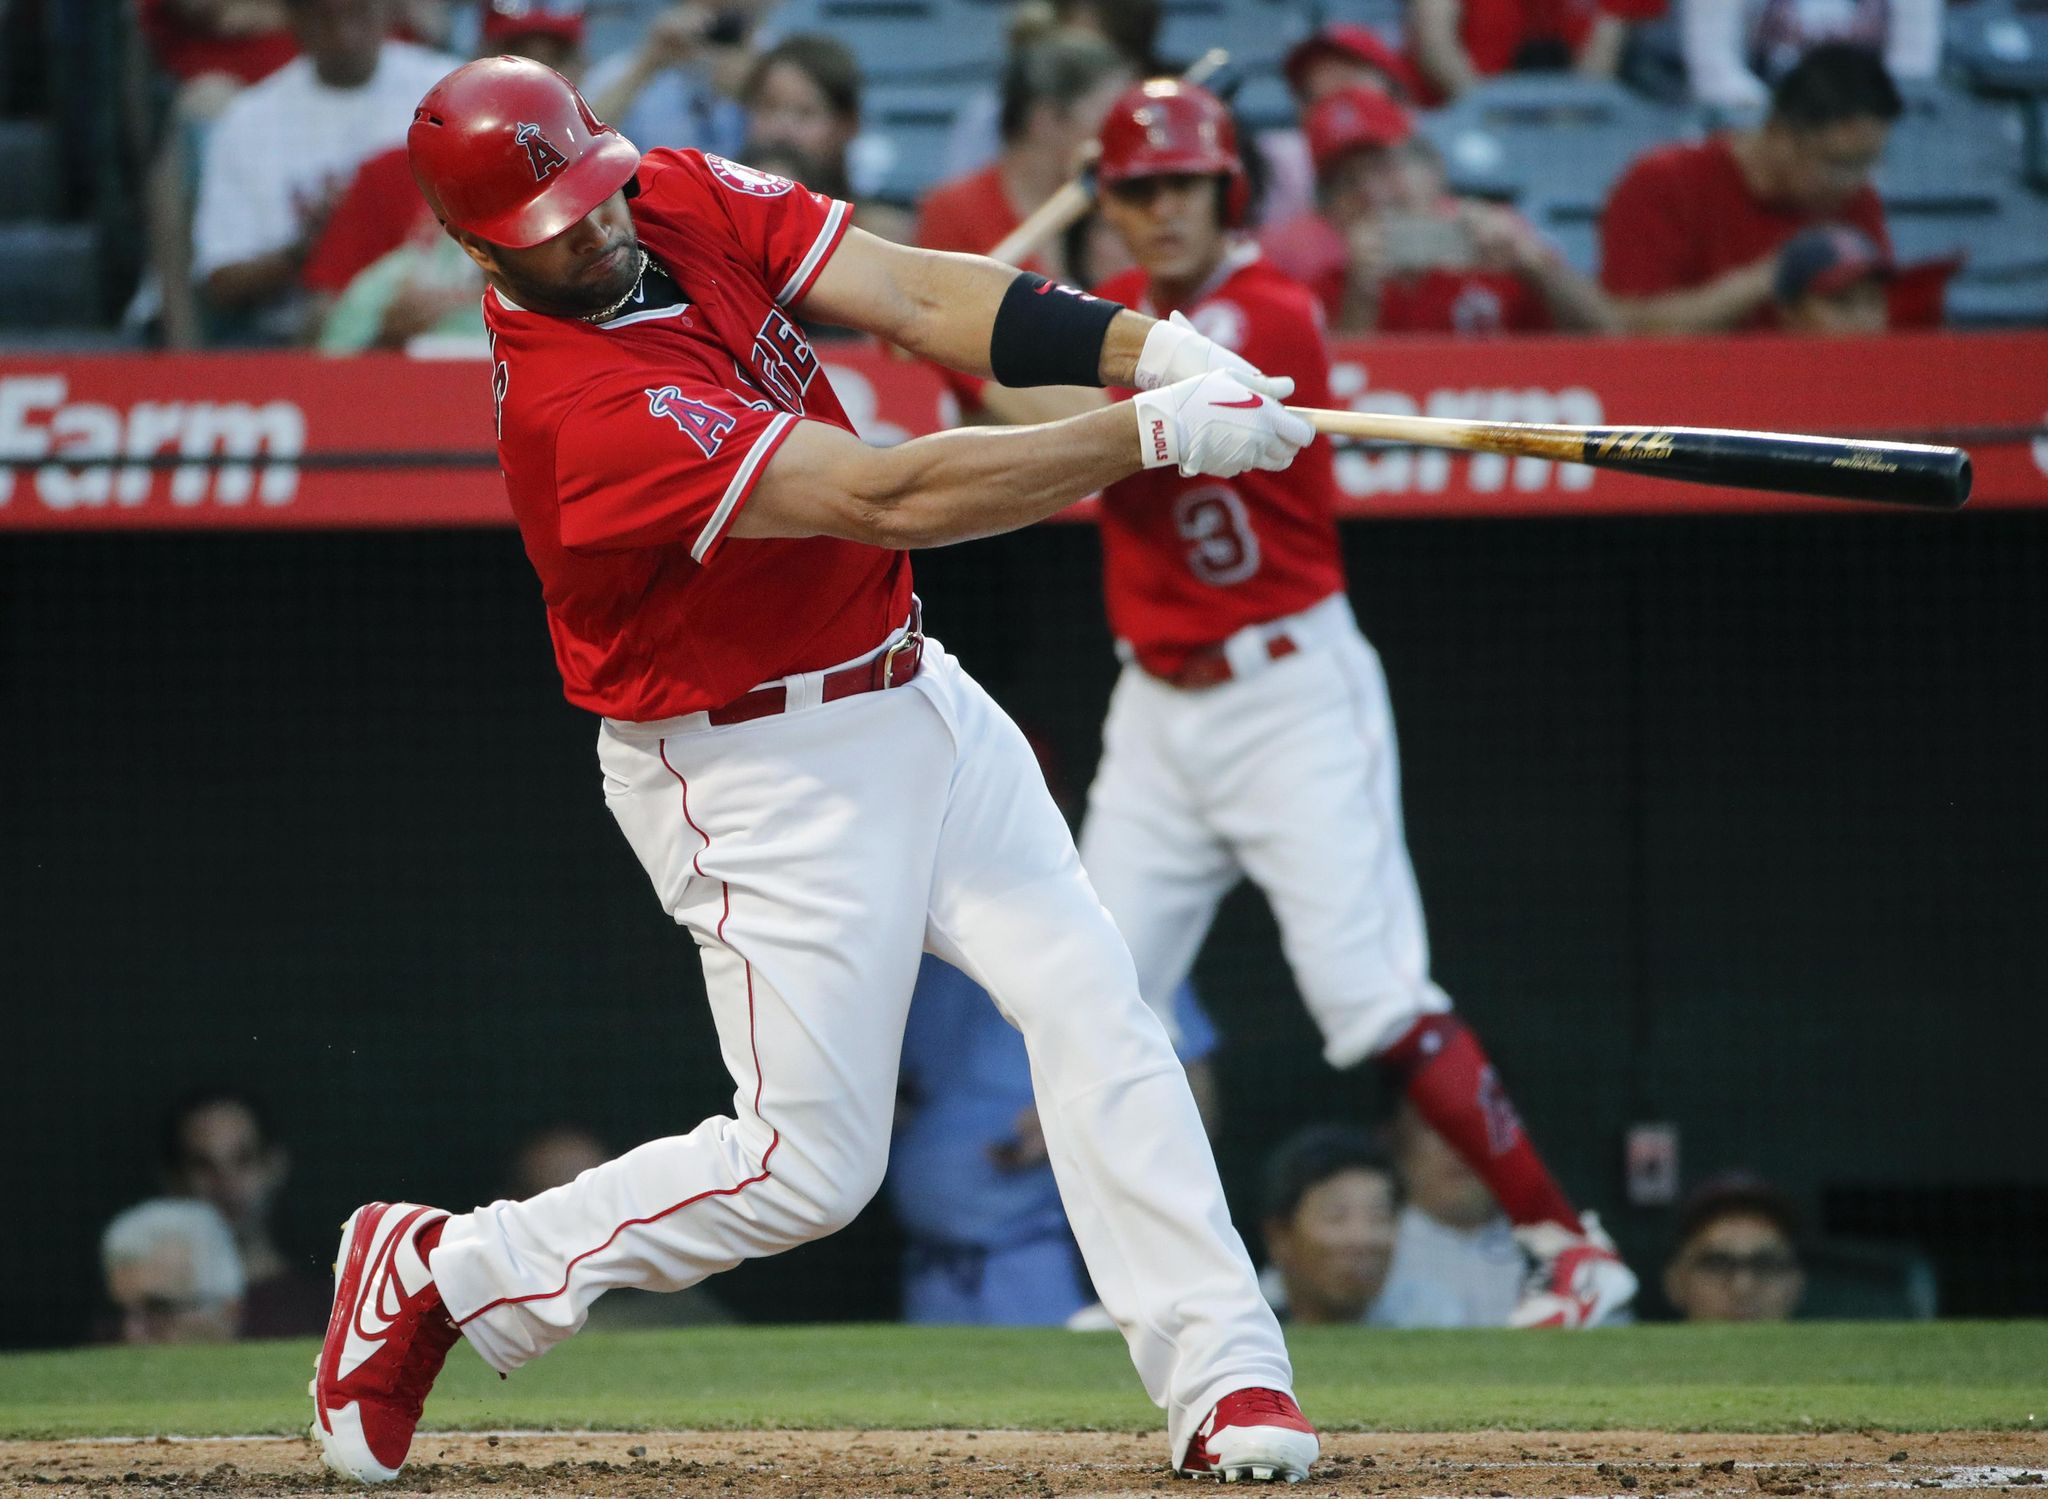 Mariners_angels_baseball_58702_s2048x1499